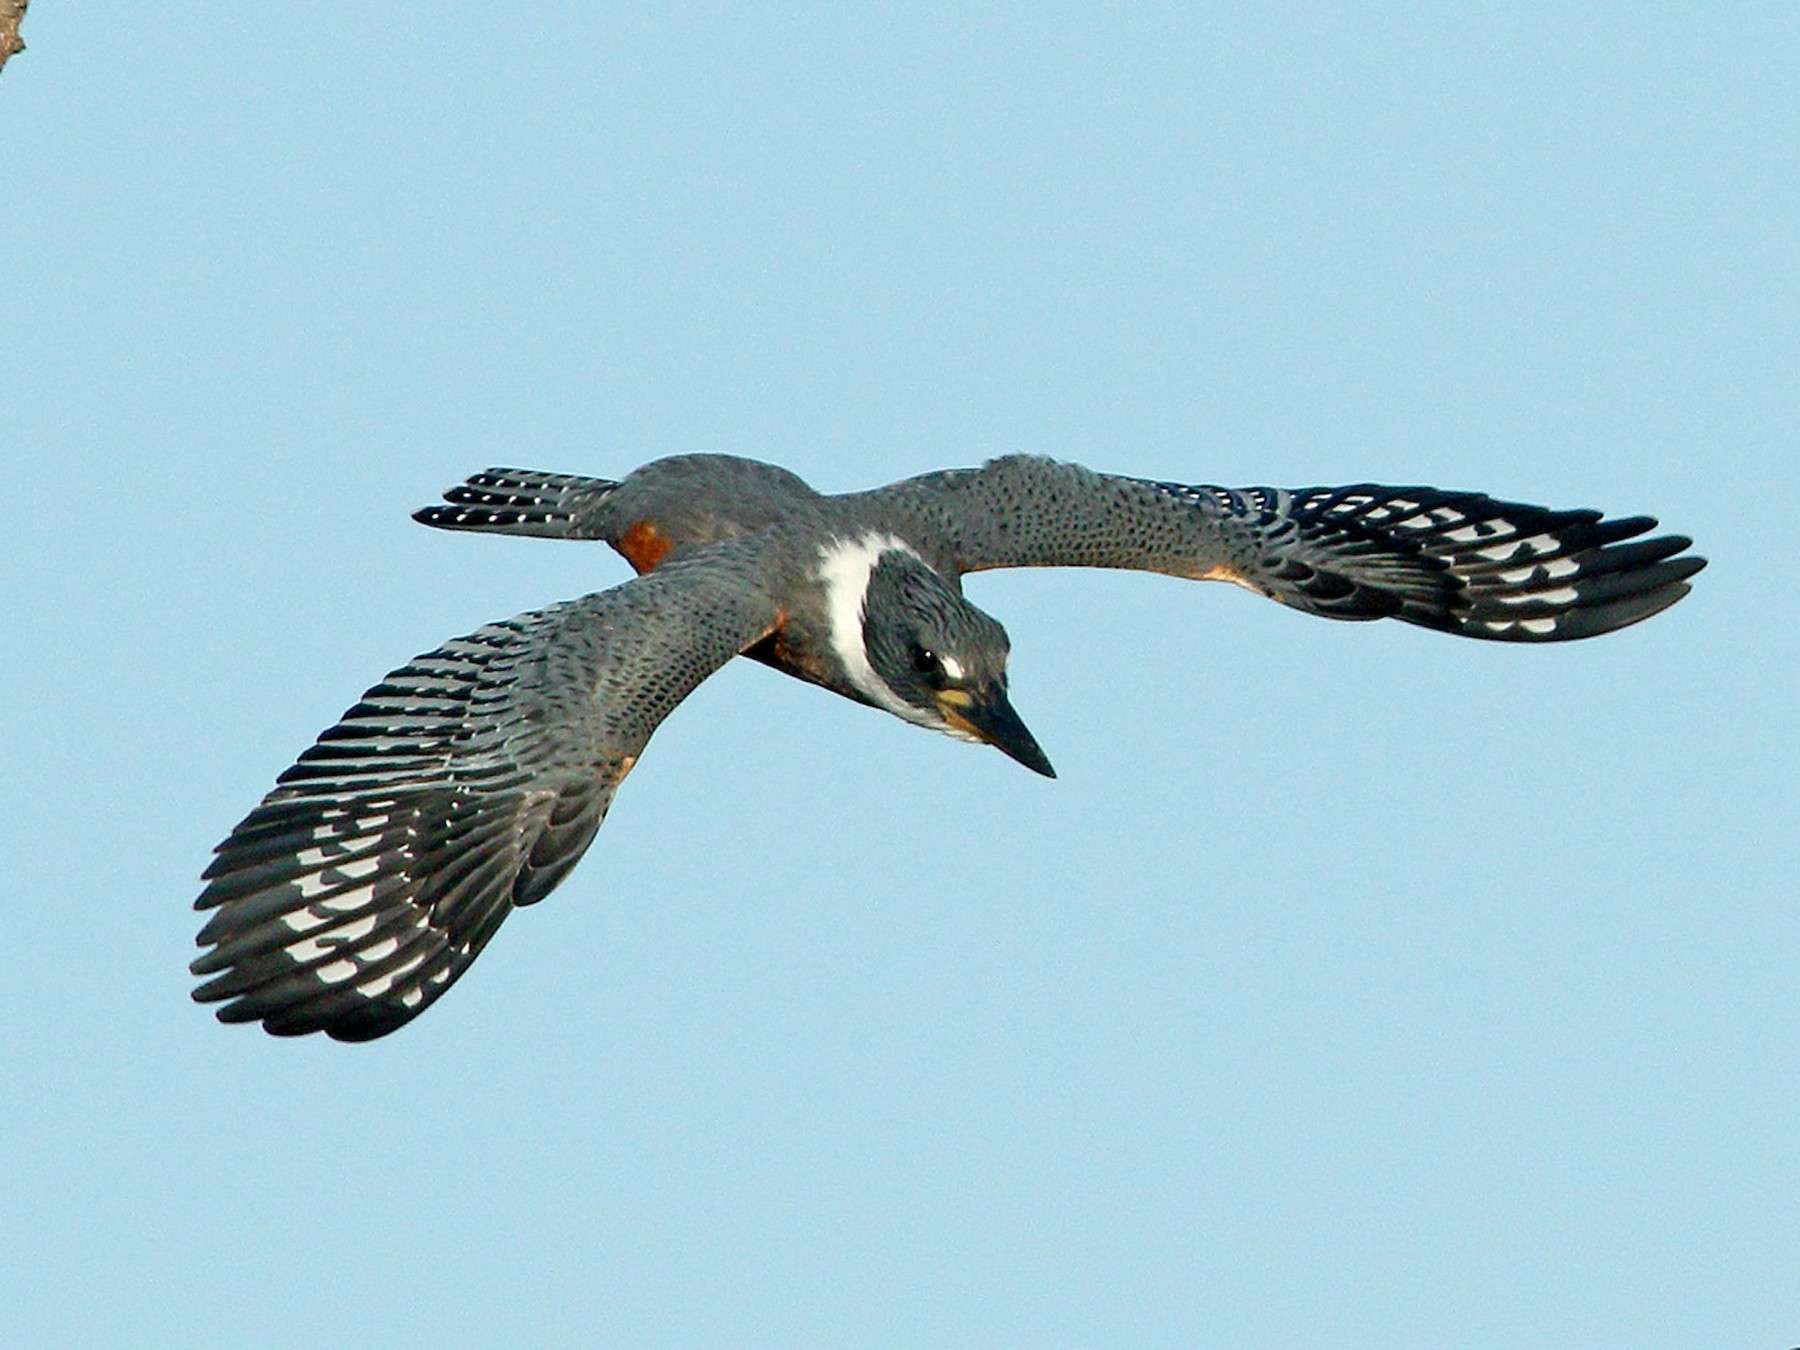 Ringed Kingfisher - Martjan Lammertink